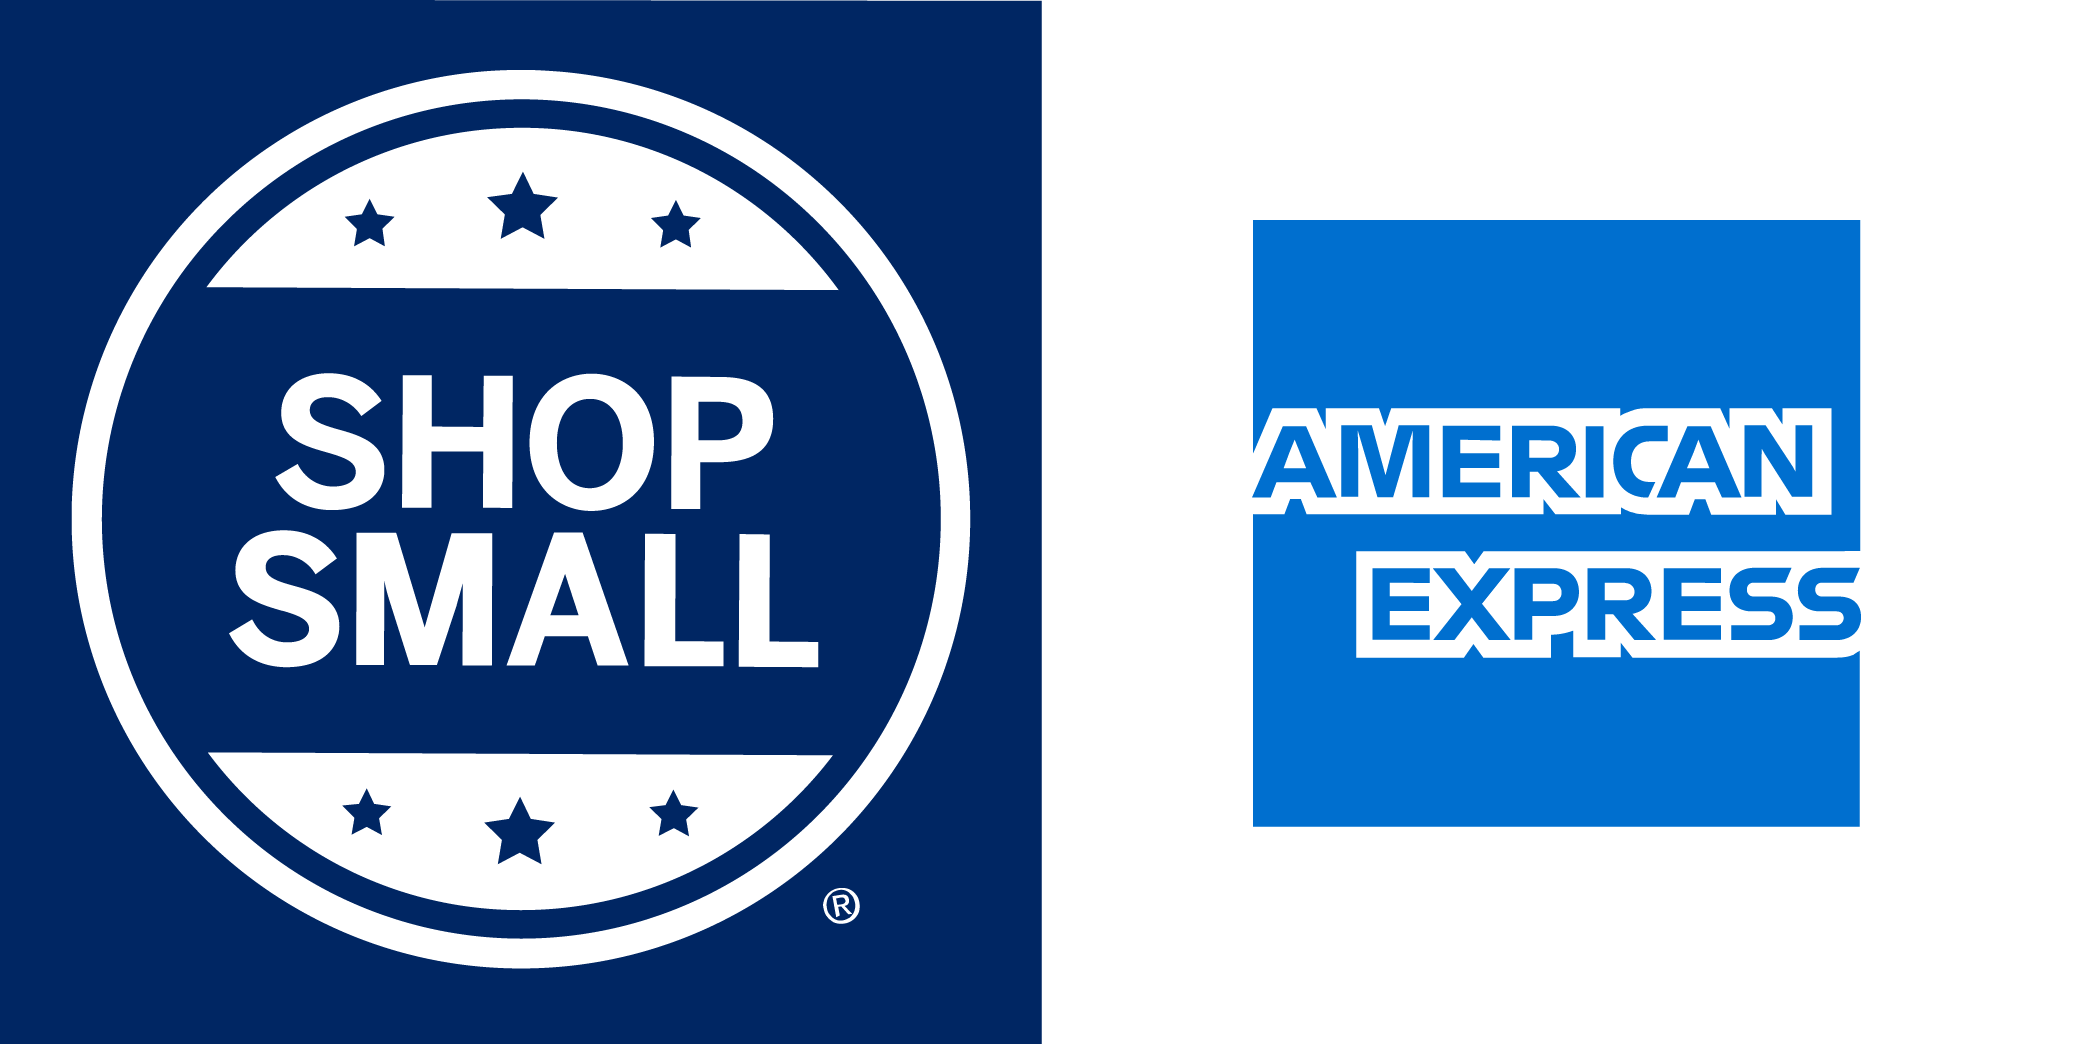 Shop Small - American Express